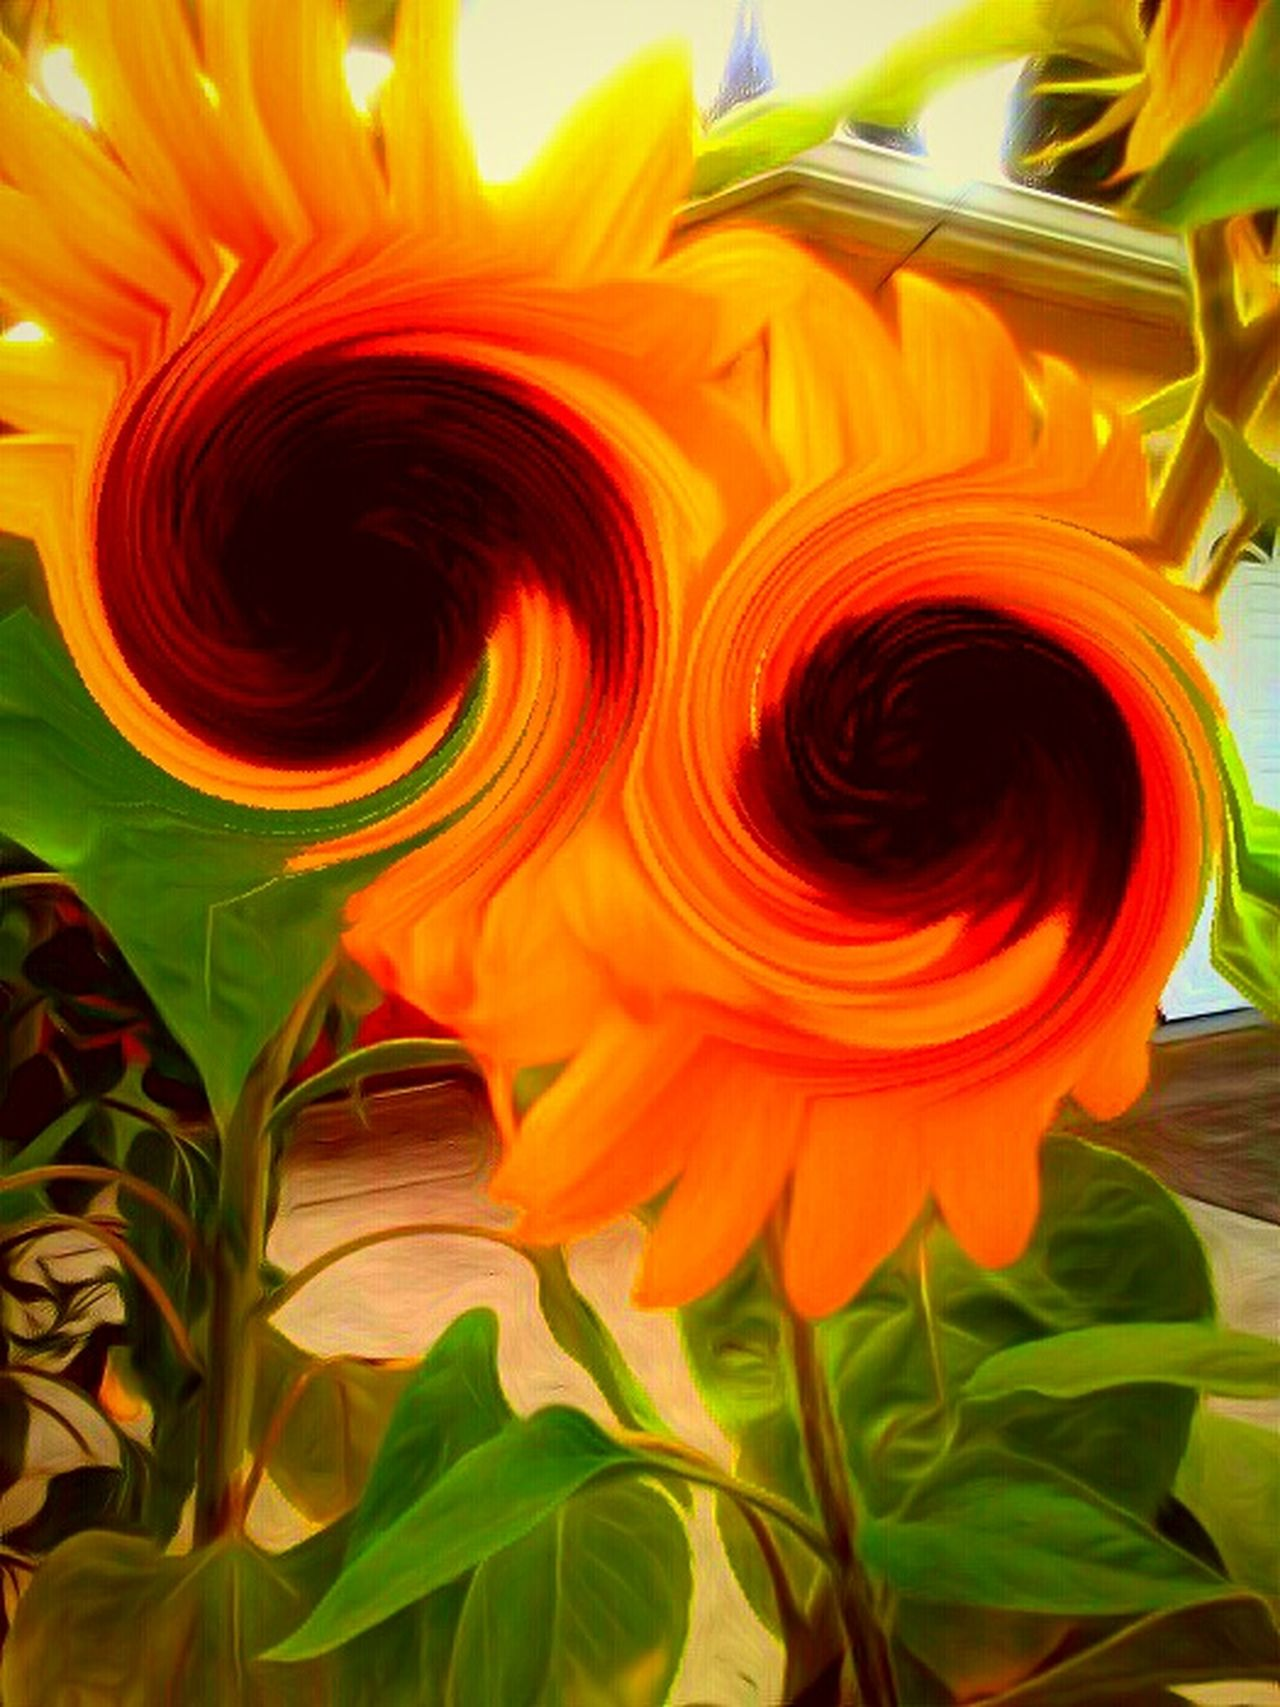 Sunflower 🌻 Sunflower Swirl Vangogh Inspired Dreamy Reality Totally Edited Photo Real Light Portrait Color Portrait Colorful Live In The Moment Nature Photography Natural Light Portrait Flower Porn...literally🌸 Natures Diversities Being Present Swirlyflowers Swirls Isnt Nature Grand? My Favorite Place My Garden Ubu&I'llbme